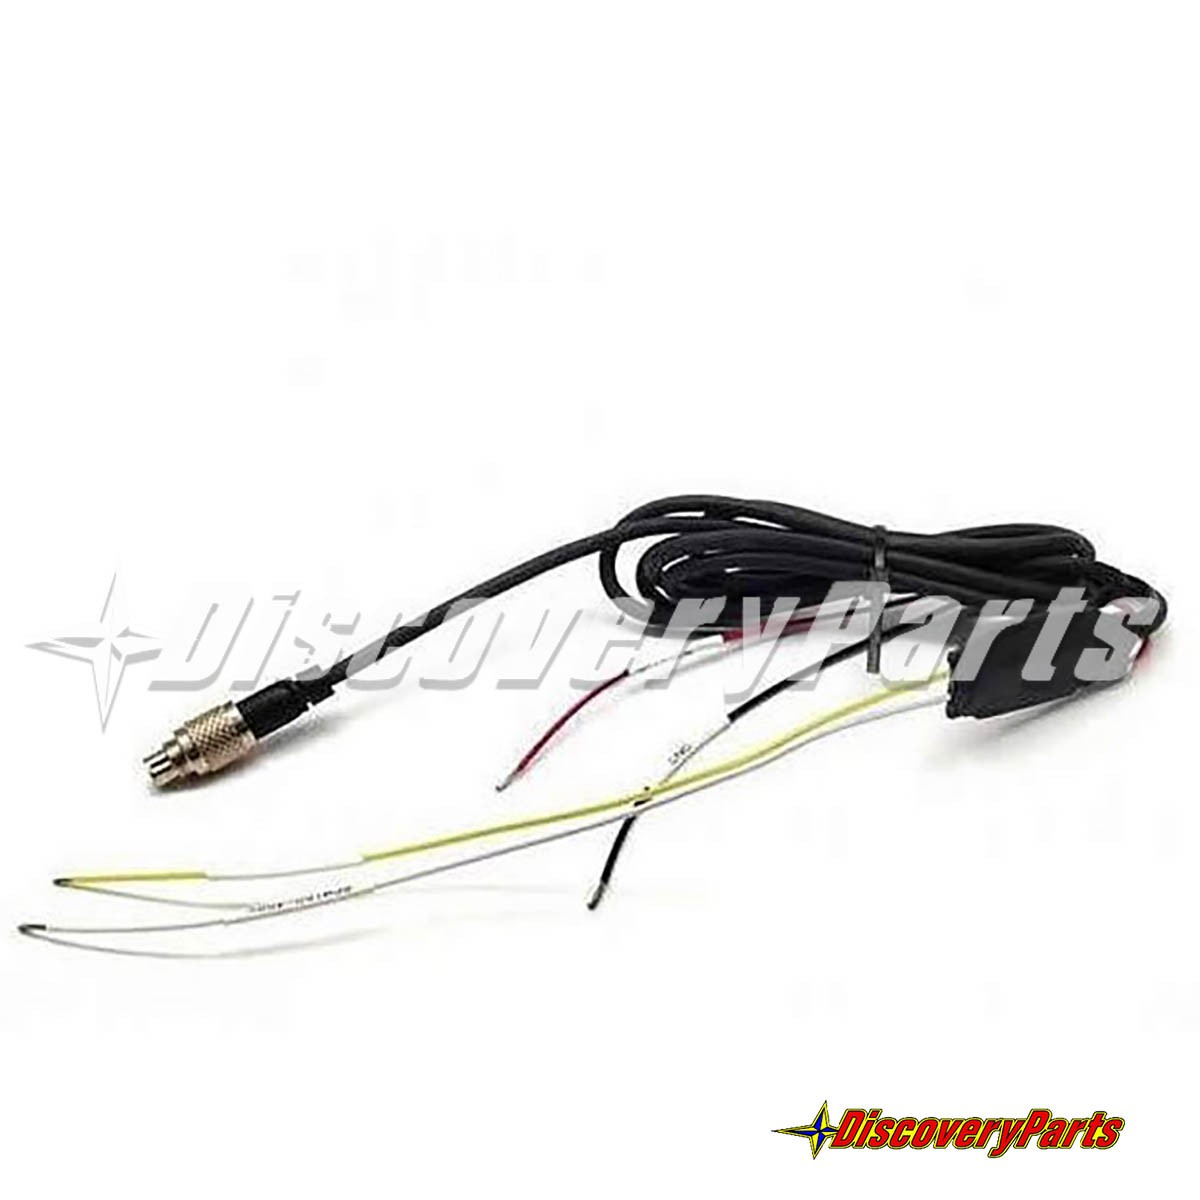 Aim Evo4 5 Pin Can Rs232 Wiring Harness